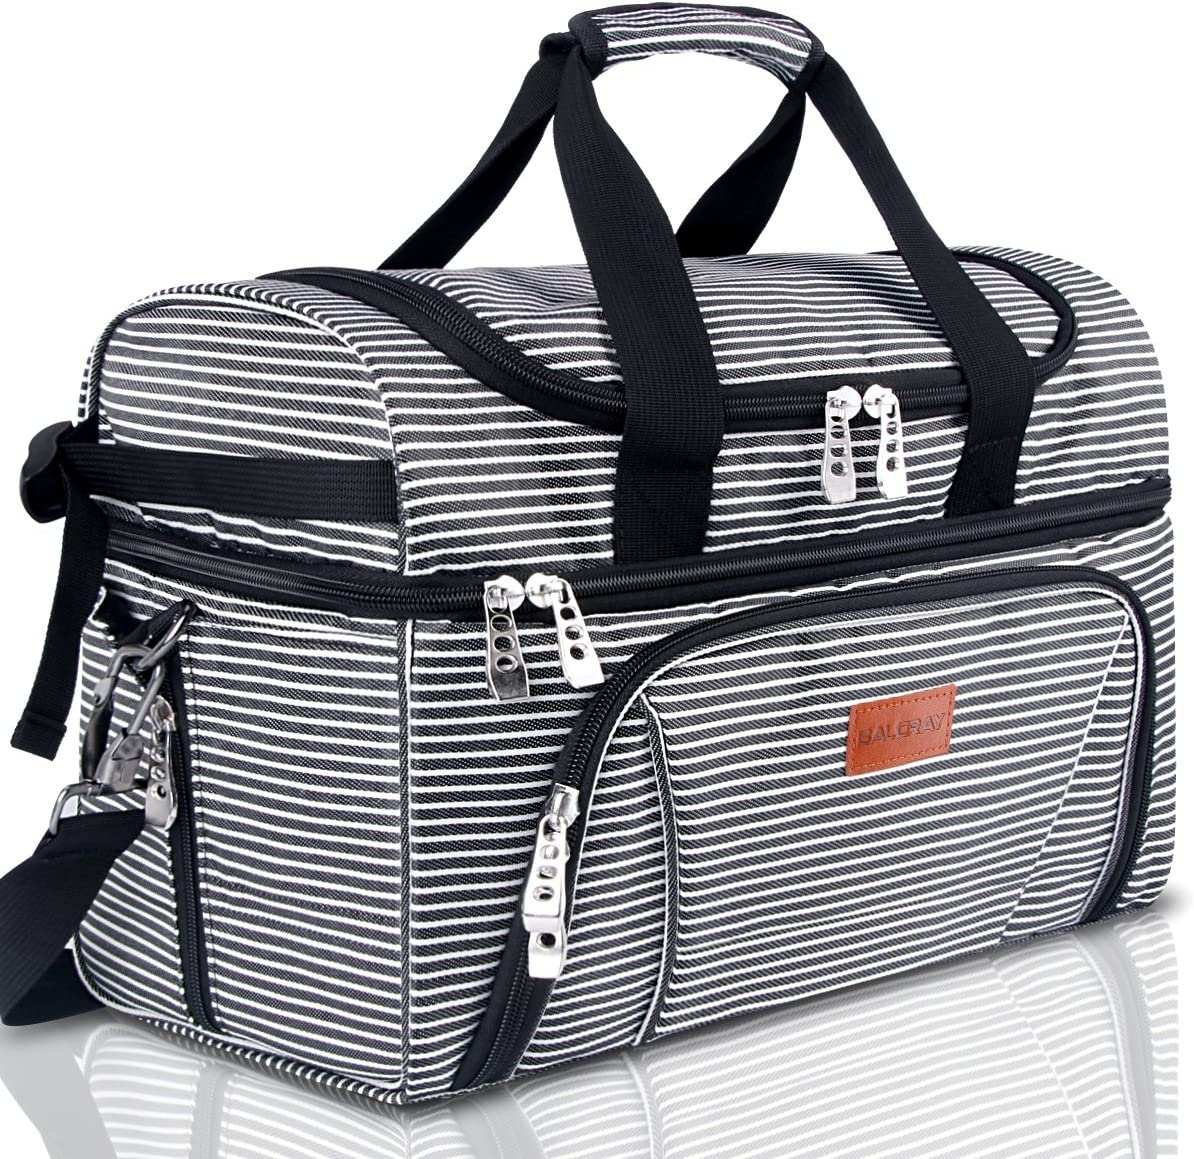 BALORAY Large Lunch Bag for Women Men Insulated Leak-proof Food Containers Lunch Pail for Office Picnic Beach Travel Camping-Black (G-217Black&White Strip)